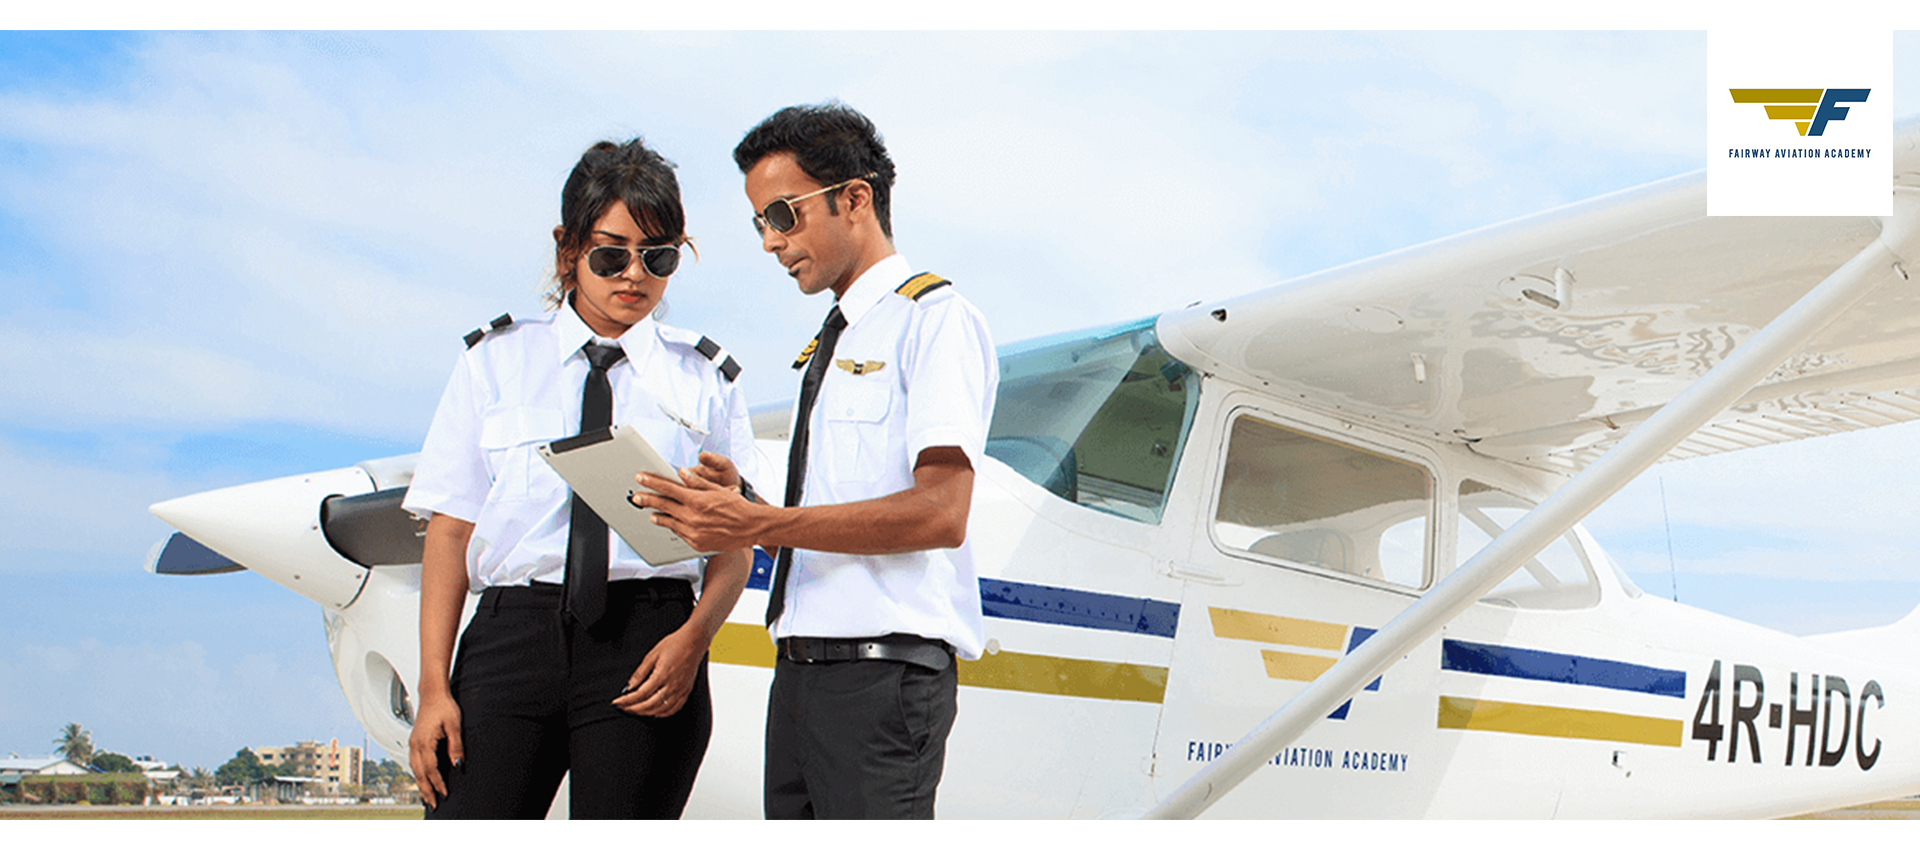 Yesman.lk - Cover Image - Fairway Aviation Academy